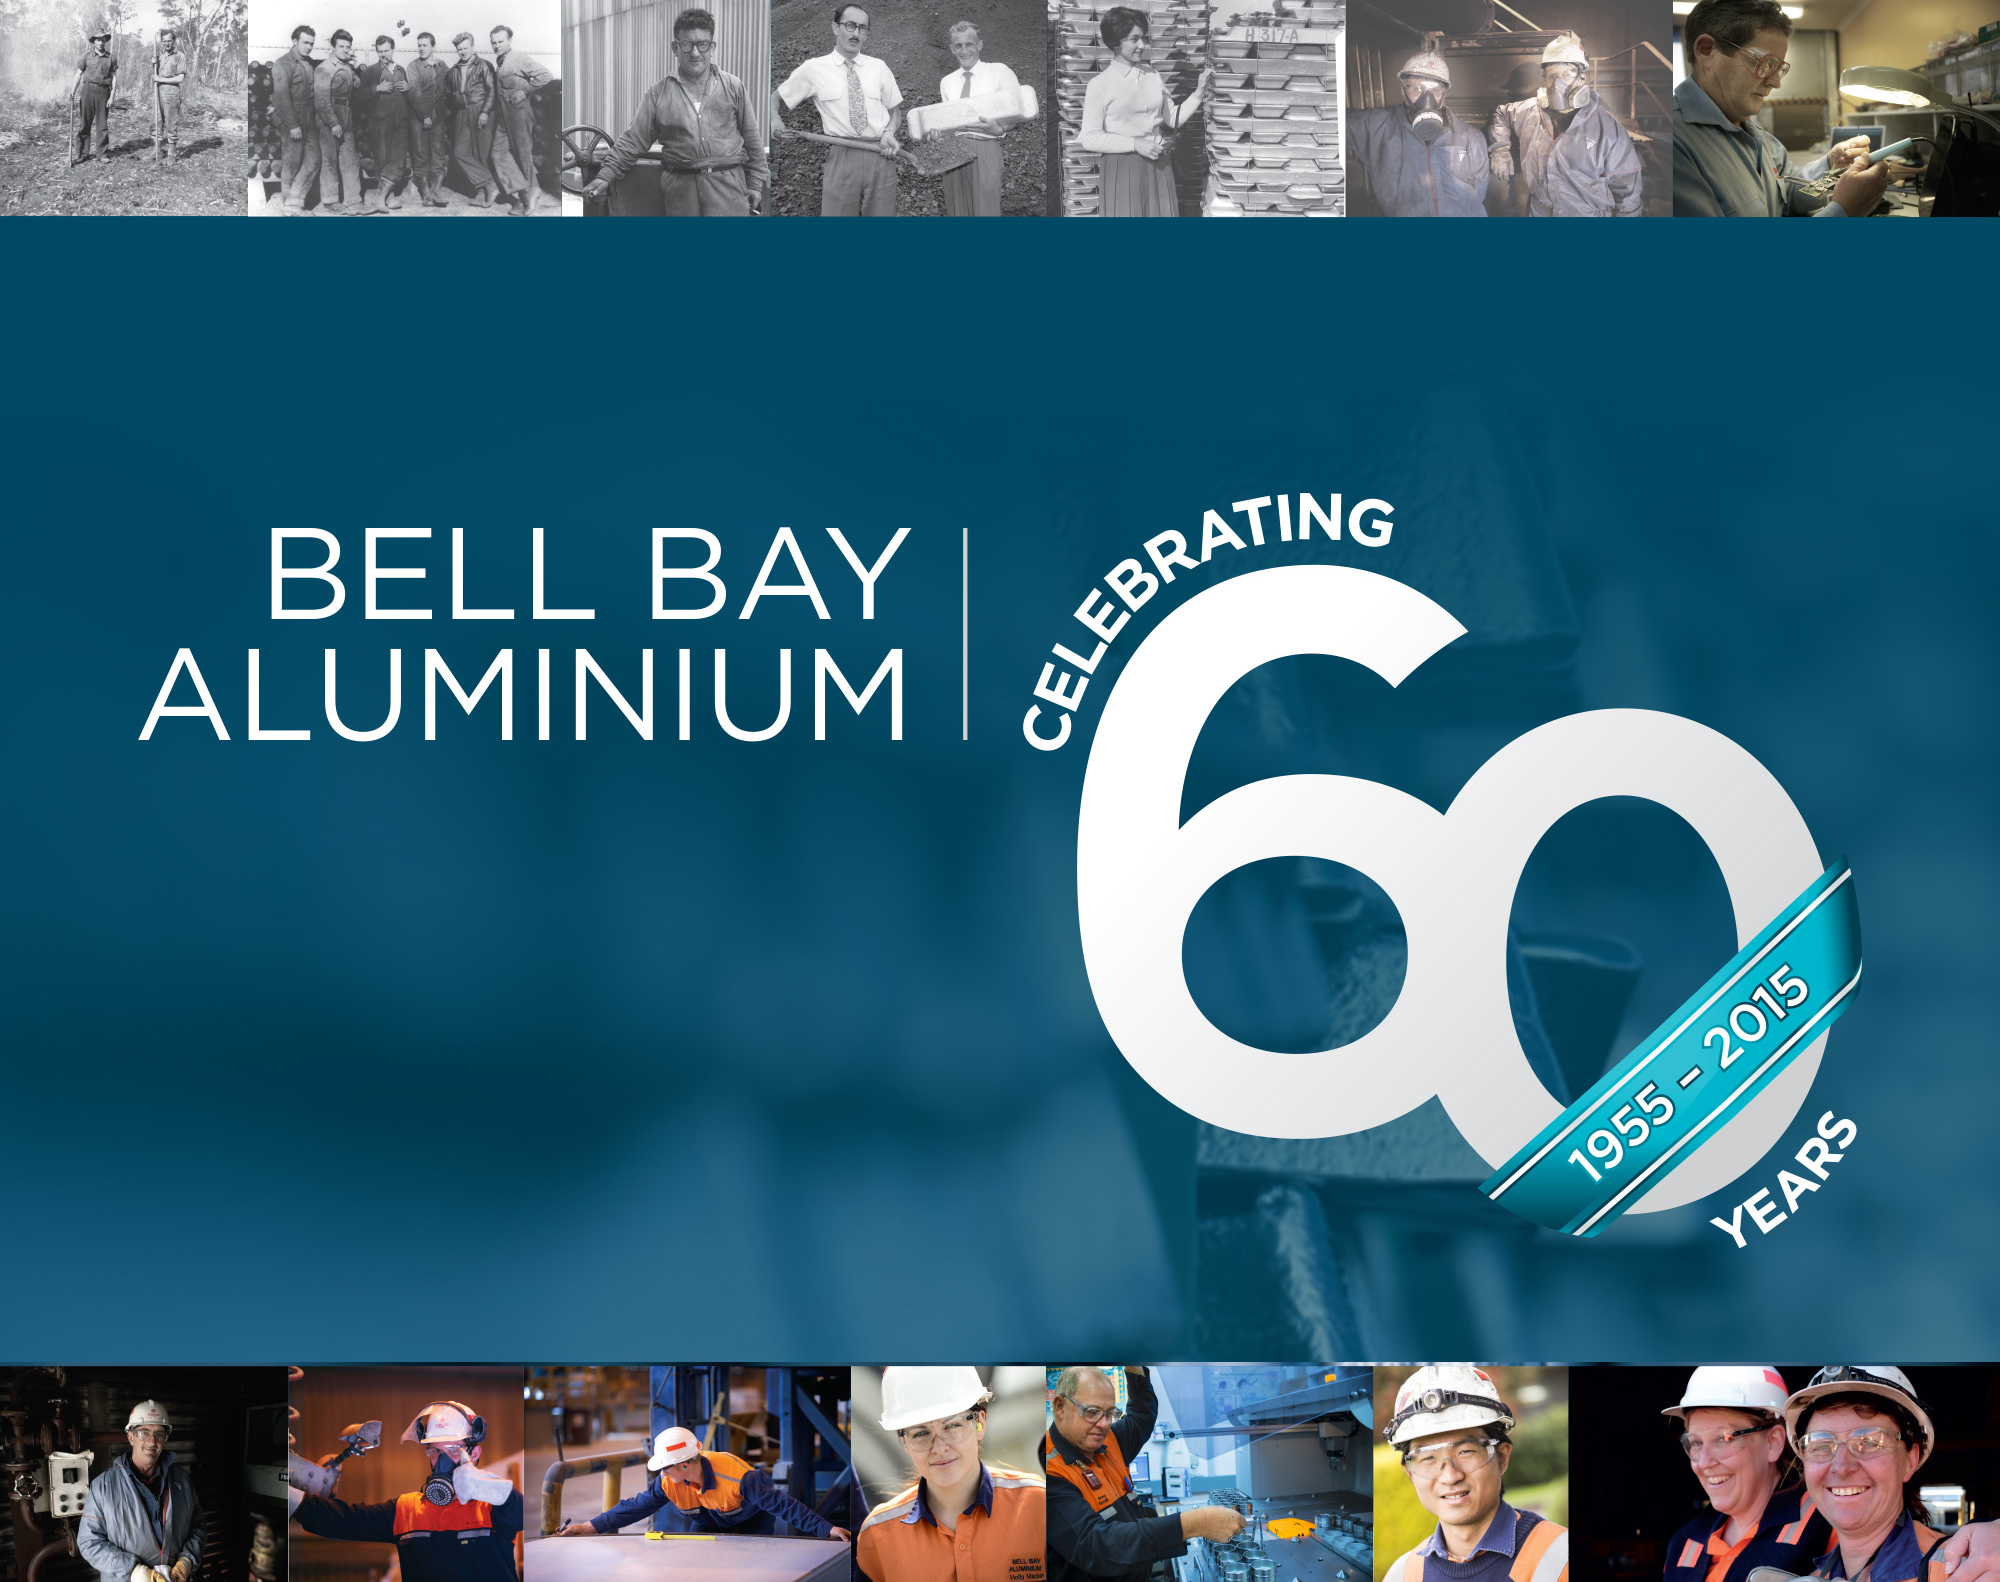 Bell Bay Aluminium 60th birthday